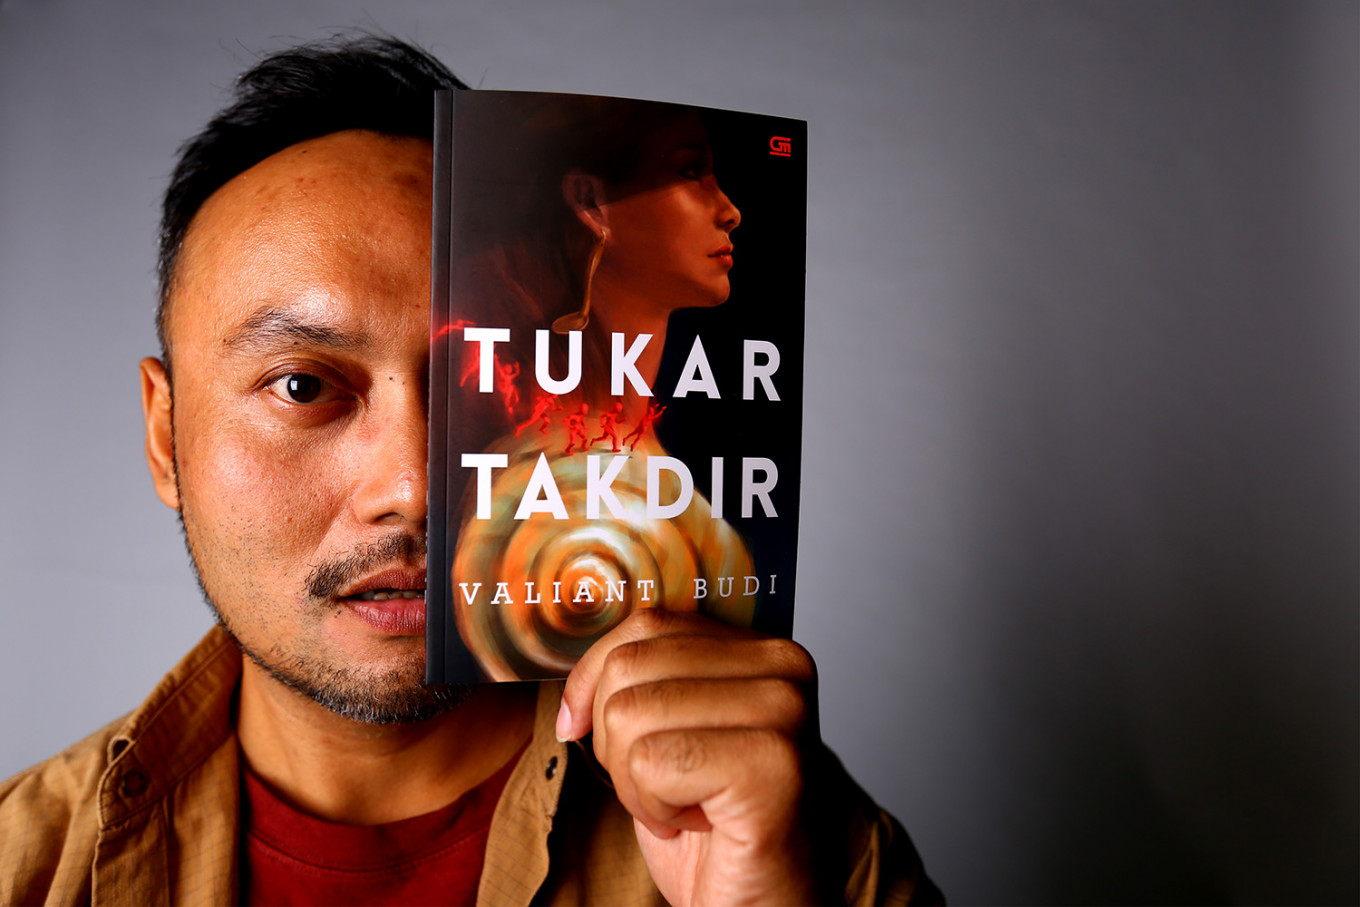 A twist of fate: Valiant Budi on 'Tukar Takdir', writing and life